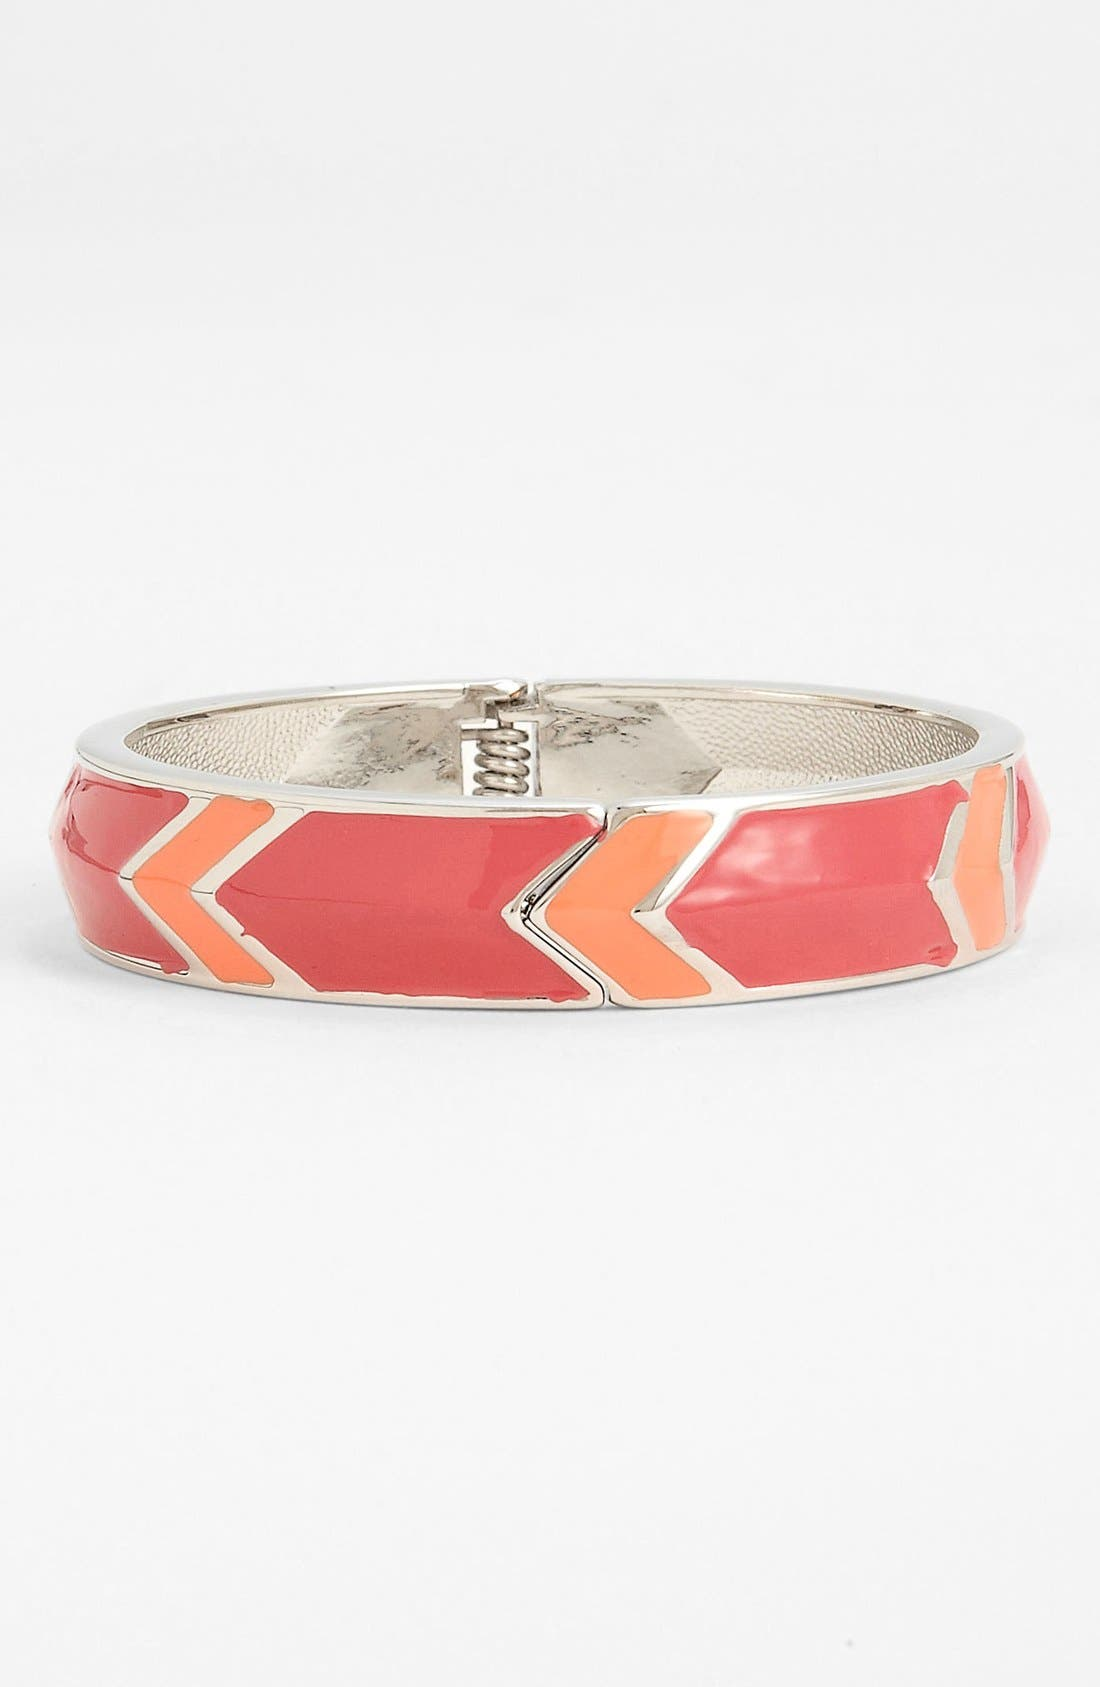 Alternate Image 1 Selected - Jessica Simpson 'Candy Shop' Bangle